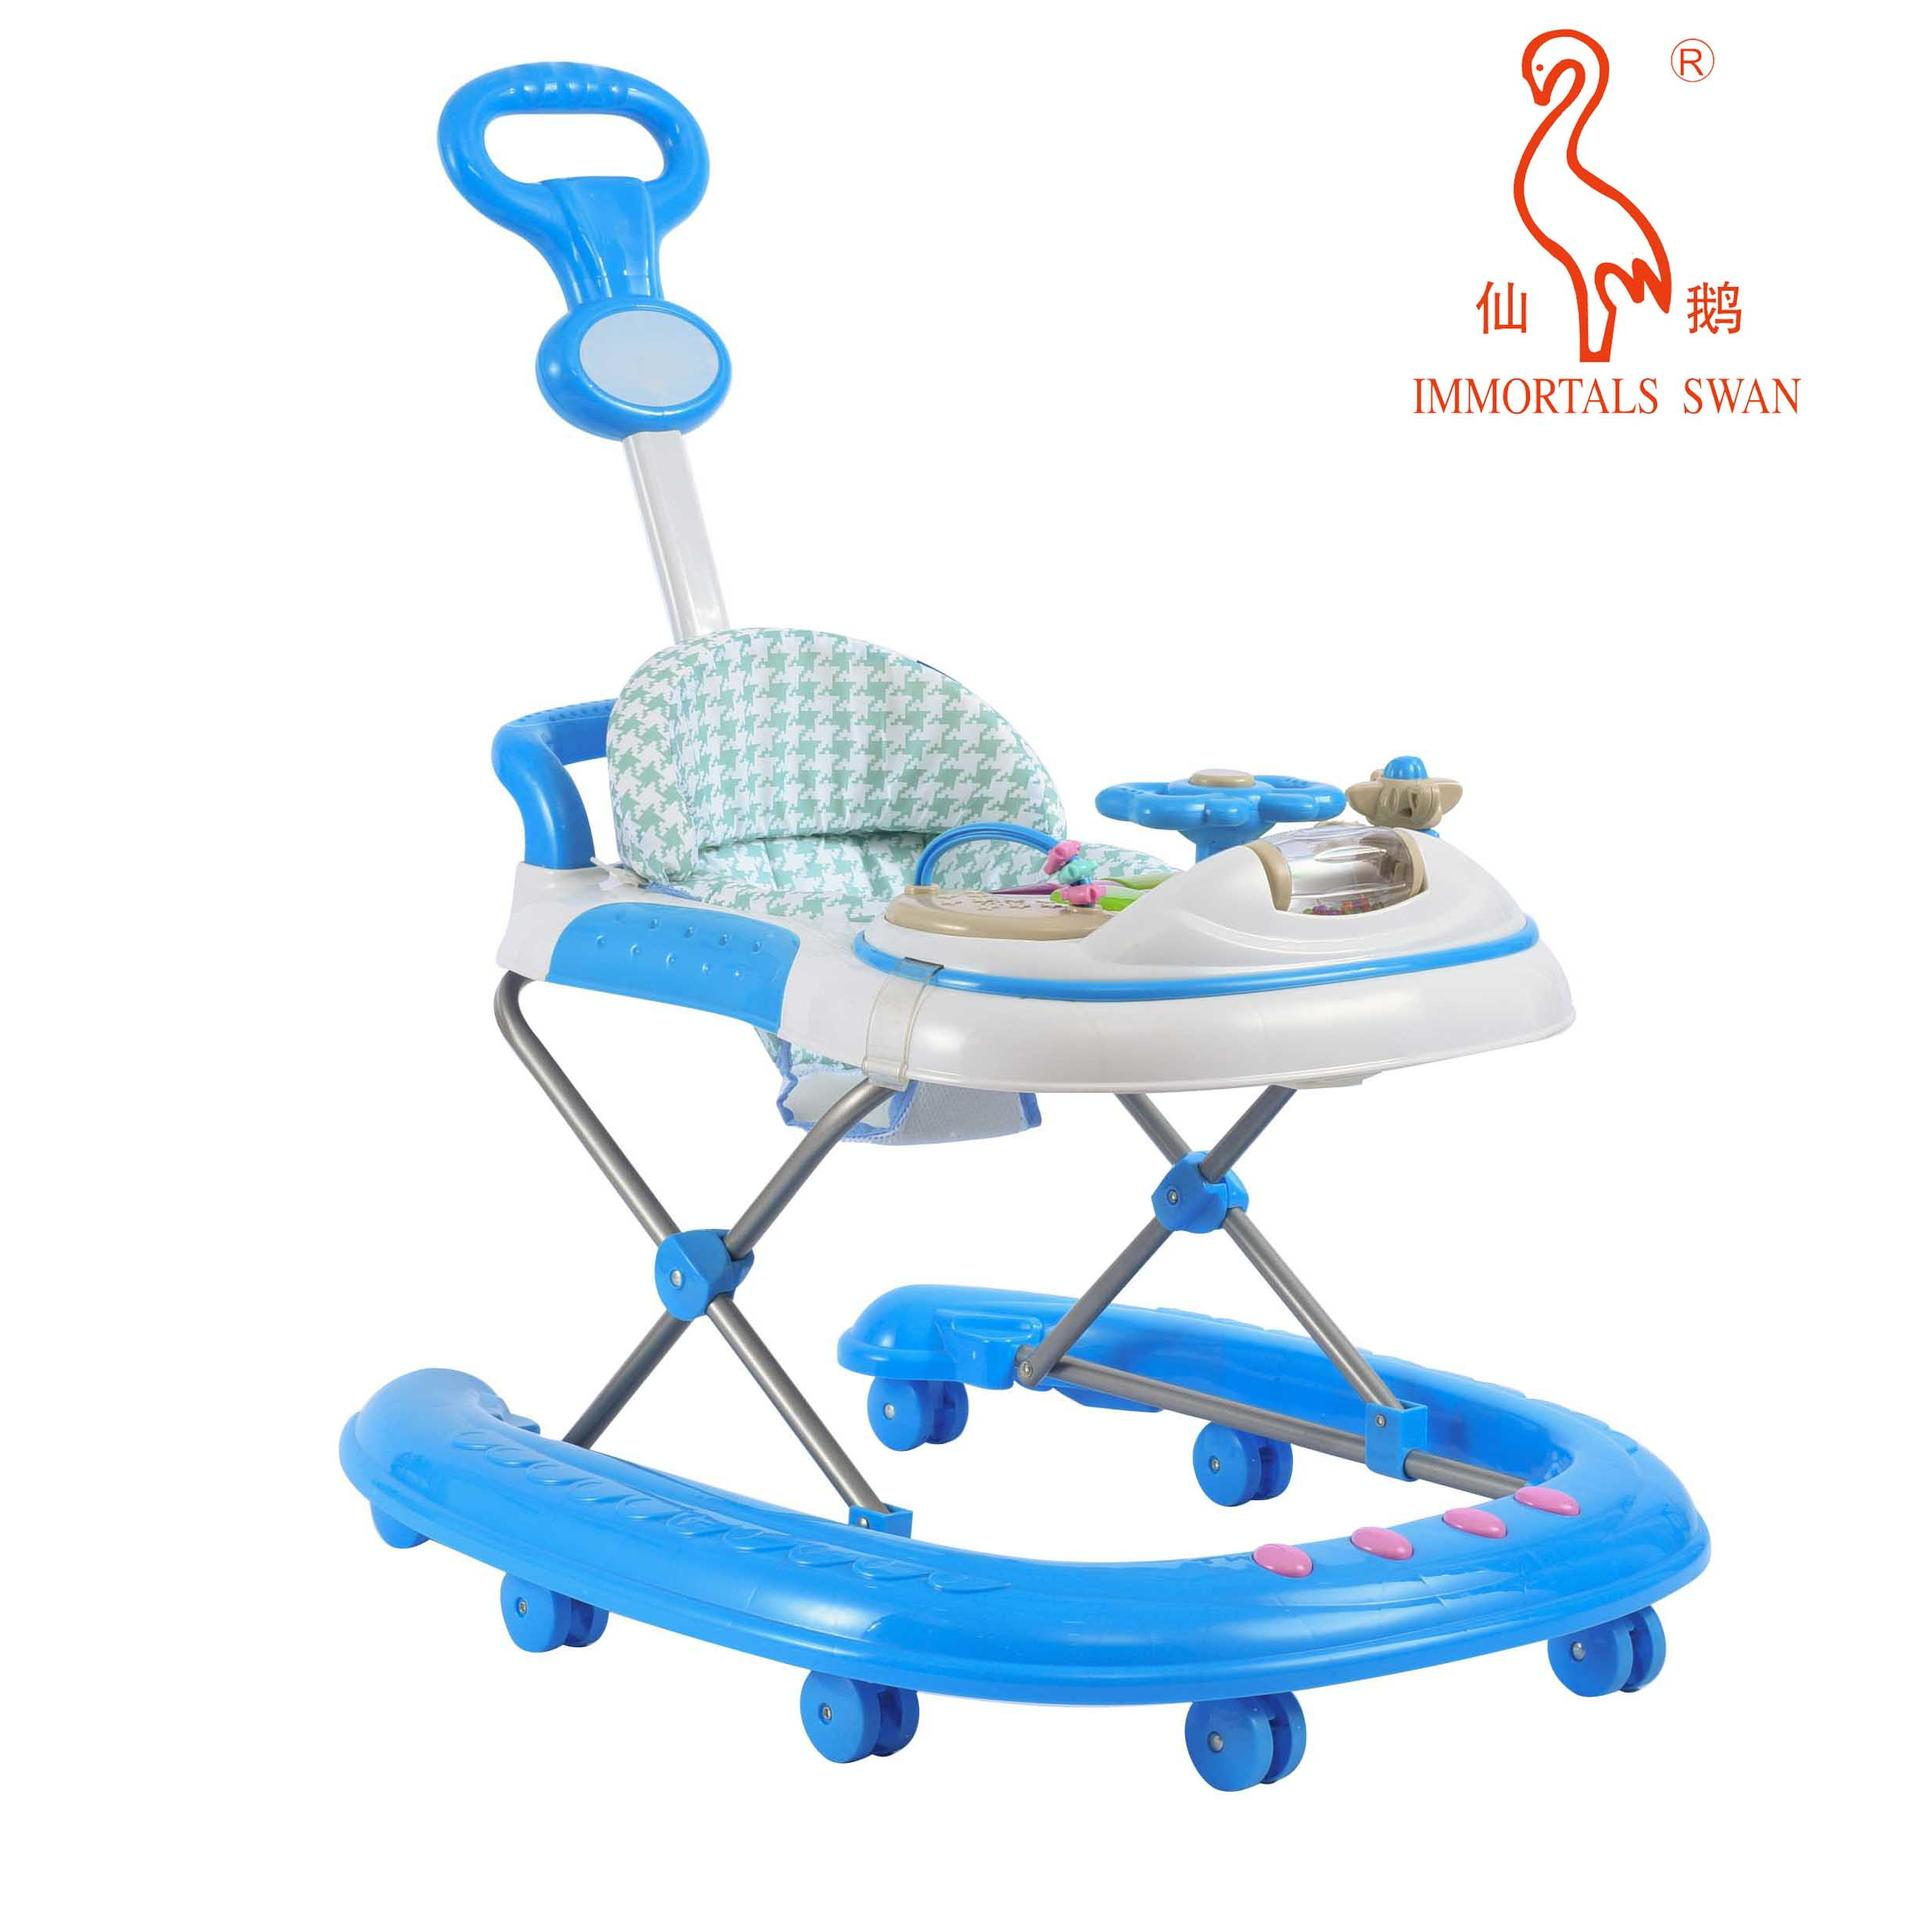 Wholesale Baby Walker with Easy Fold Frame for Storage, Ages 6 months Plus With Good Price-Aoqi